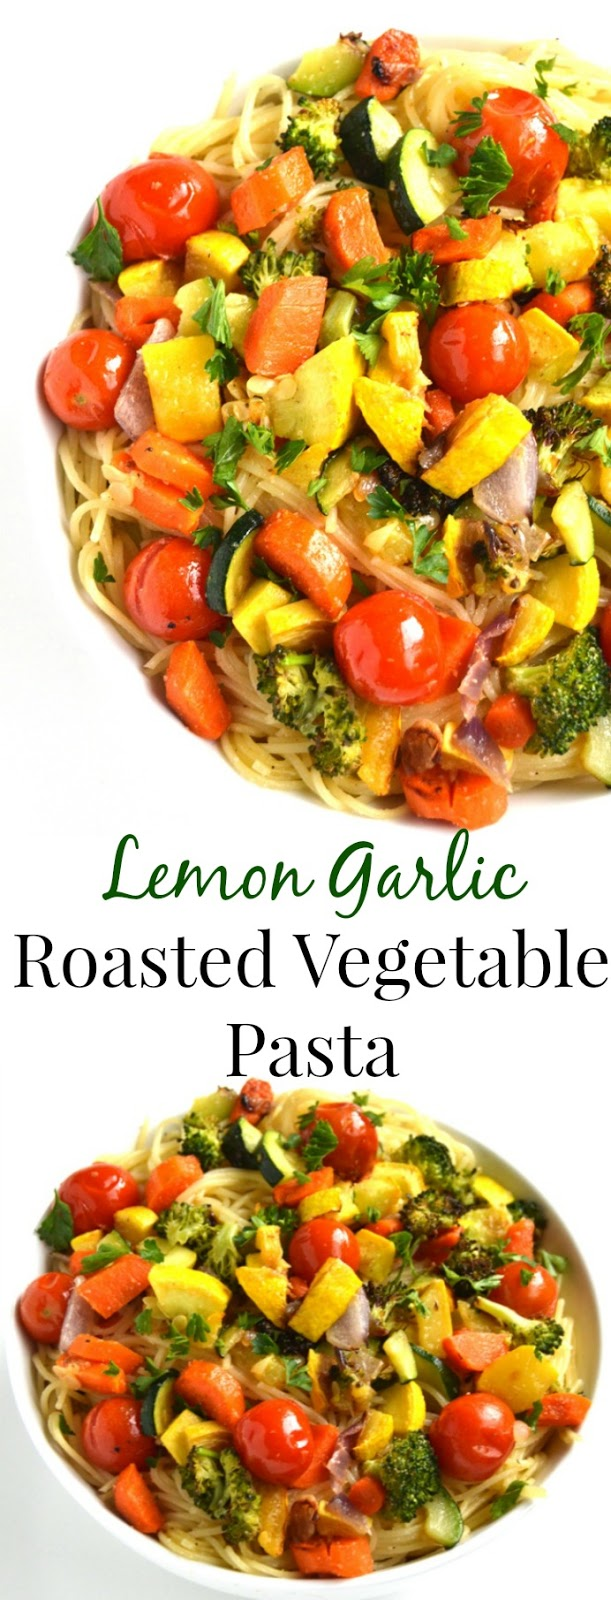 Lemon Garlic Roasted Vegetable Pasta is a light and flavorful dish that is ready in 25 minutes and is packed with your favorite roasted vegetables that is perfect for any dinner party! www.nutritionistreviews.com